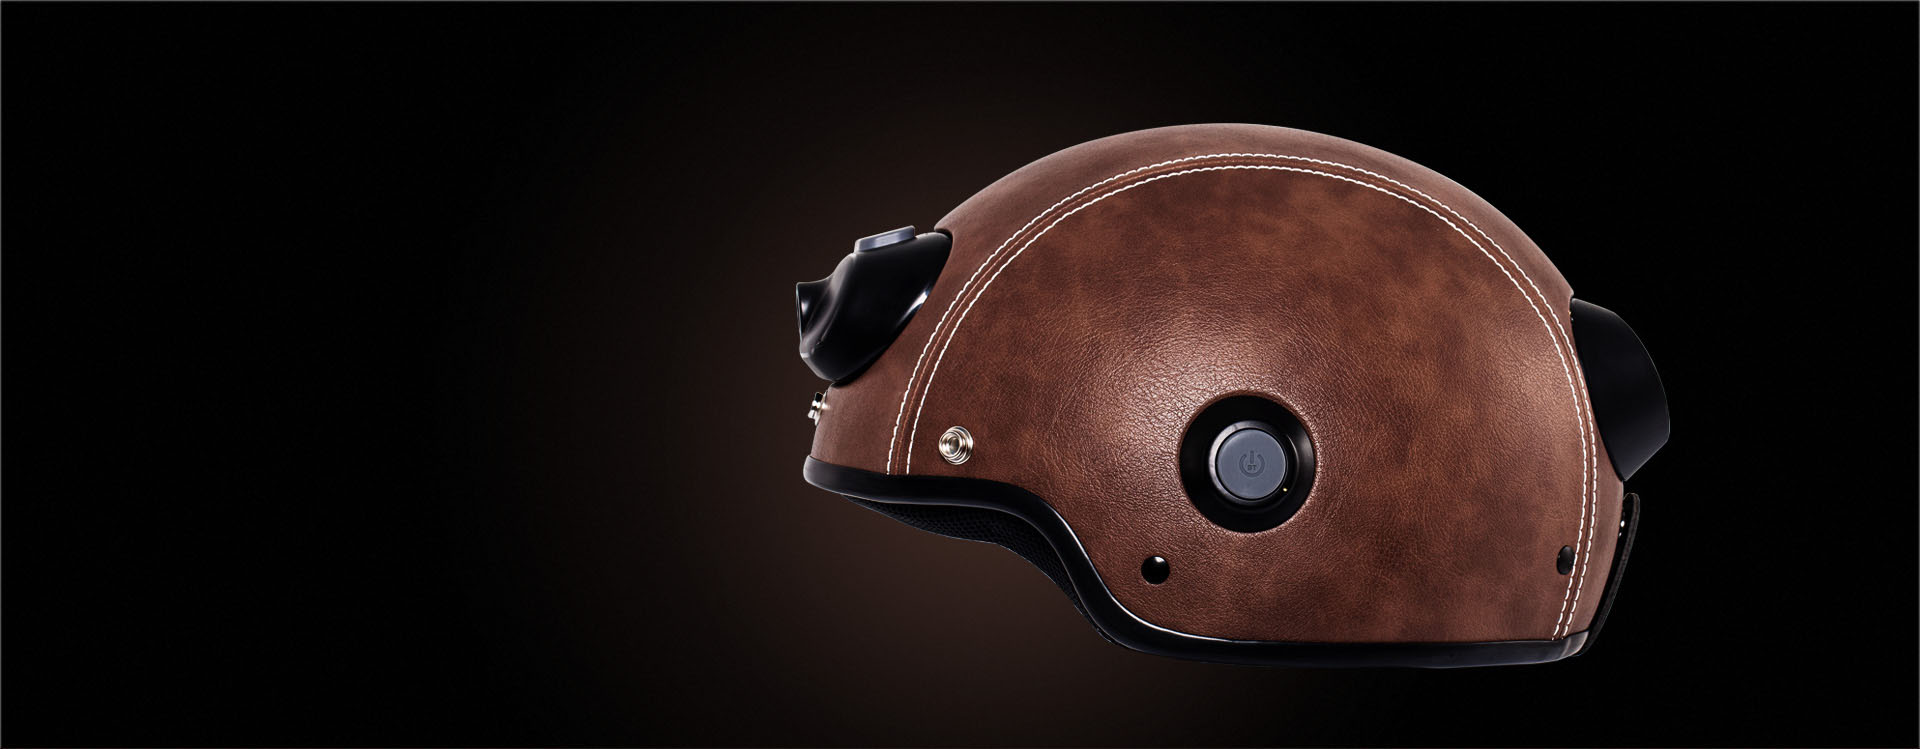 Airwheel C6 open face helmet